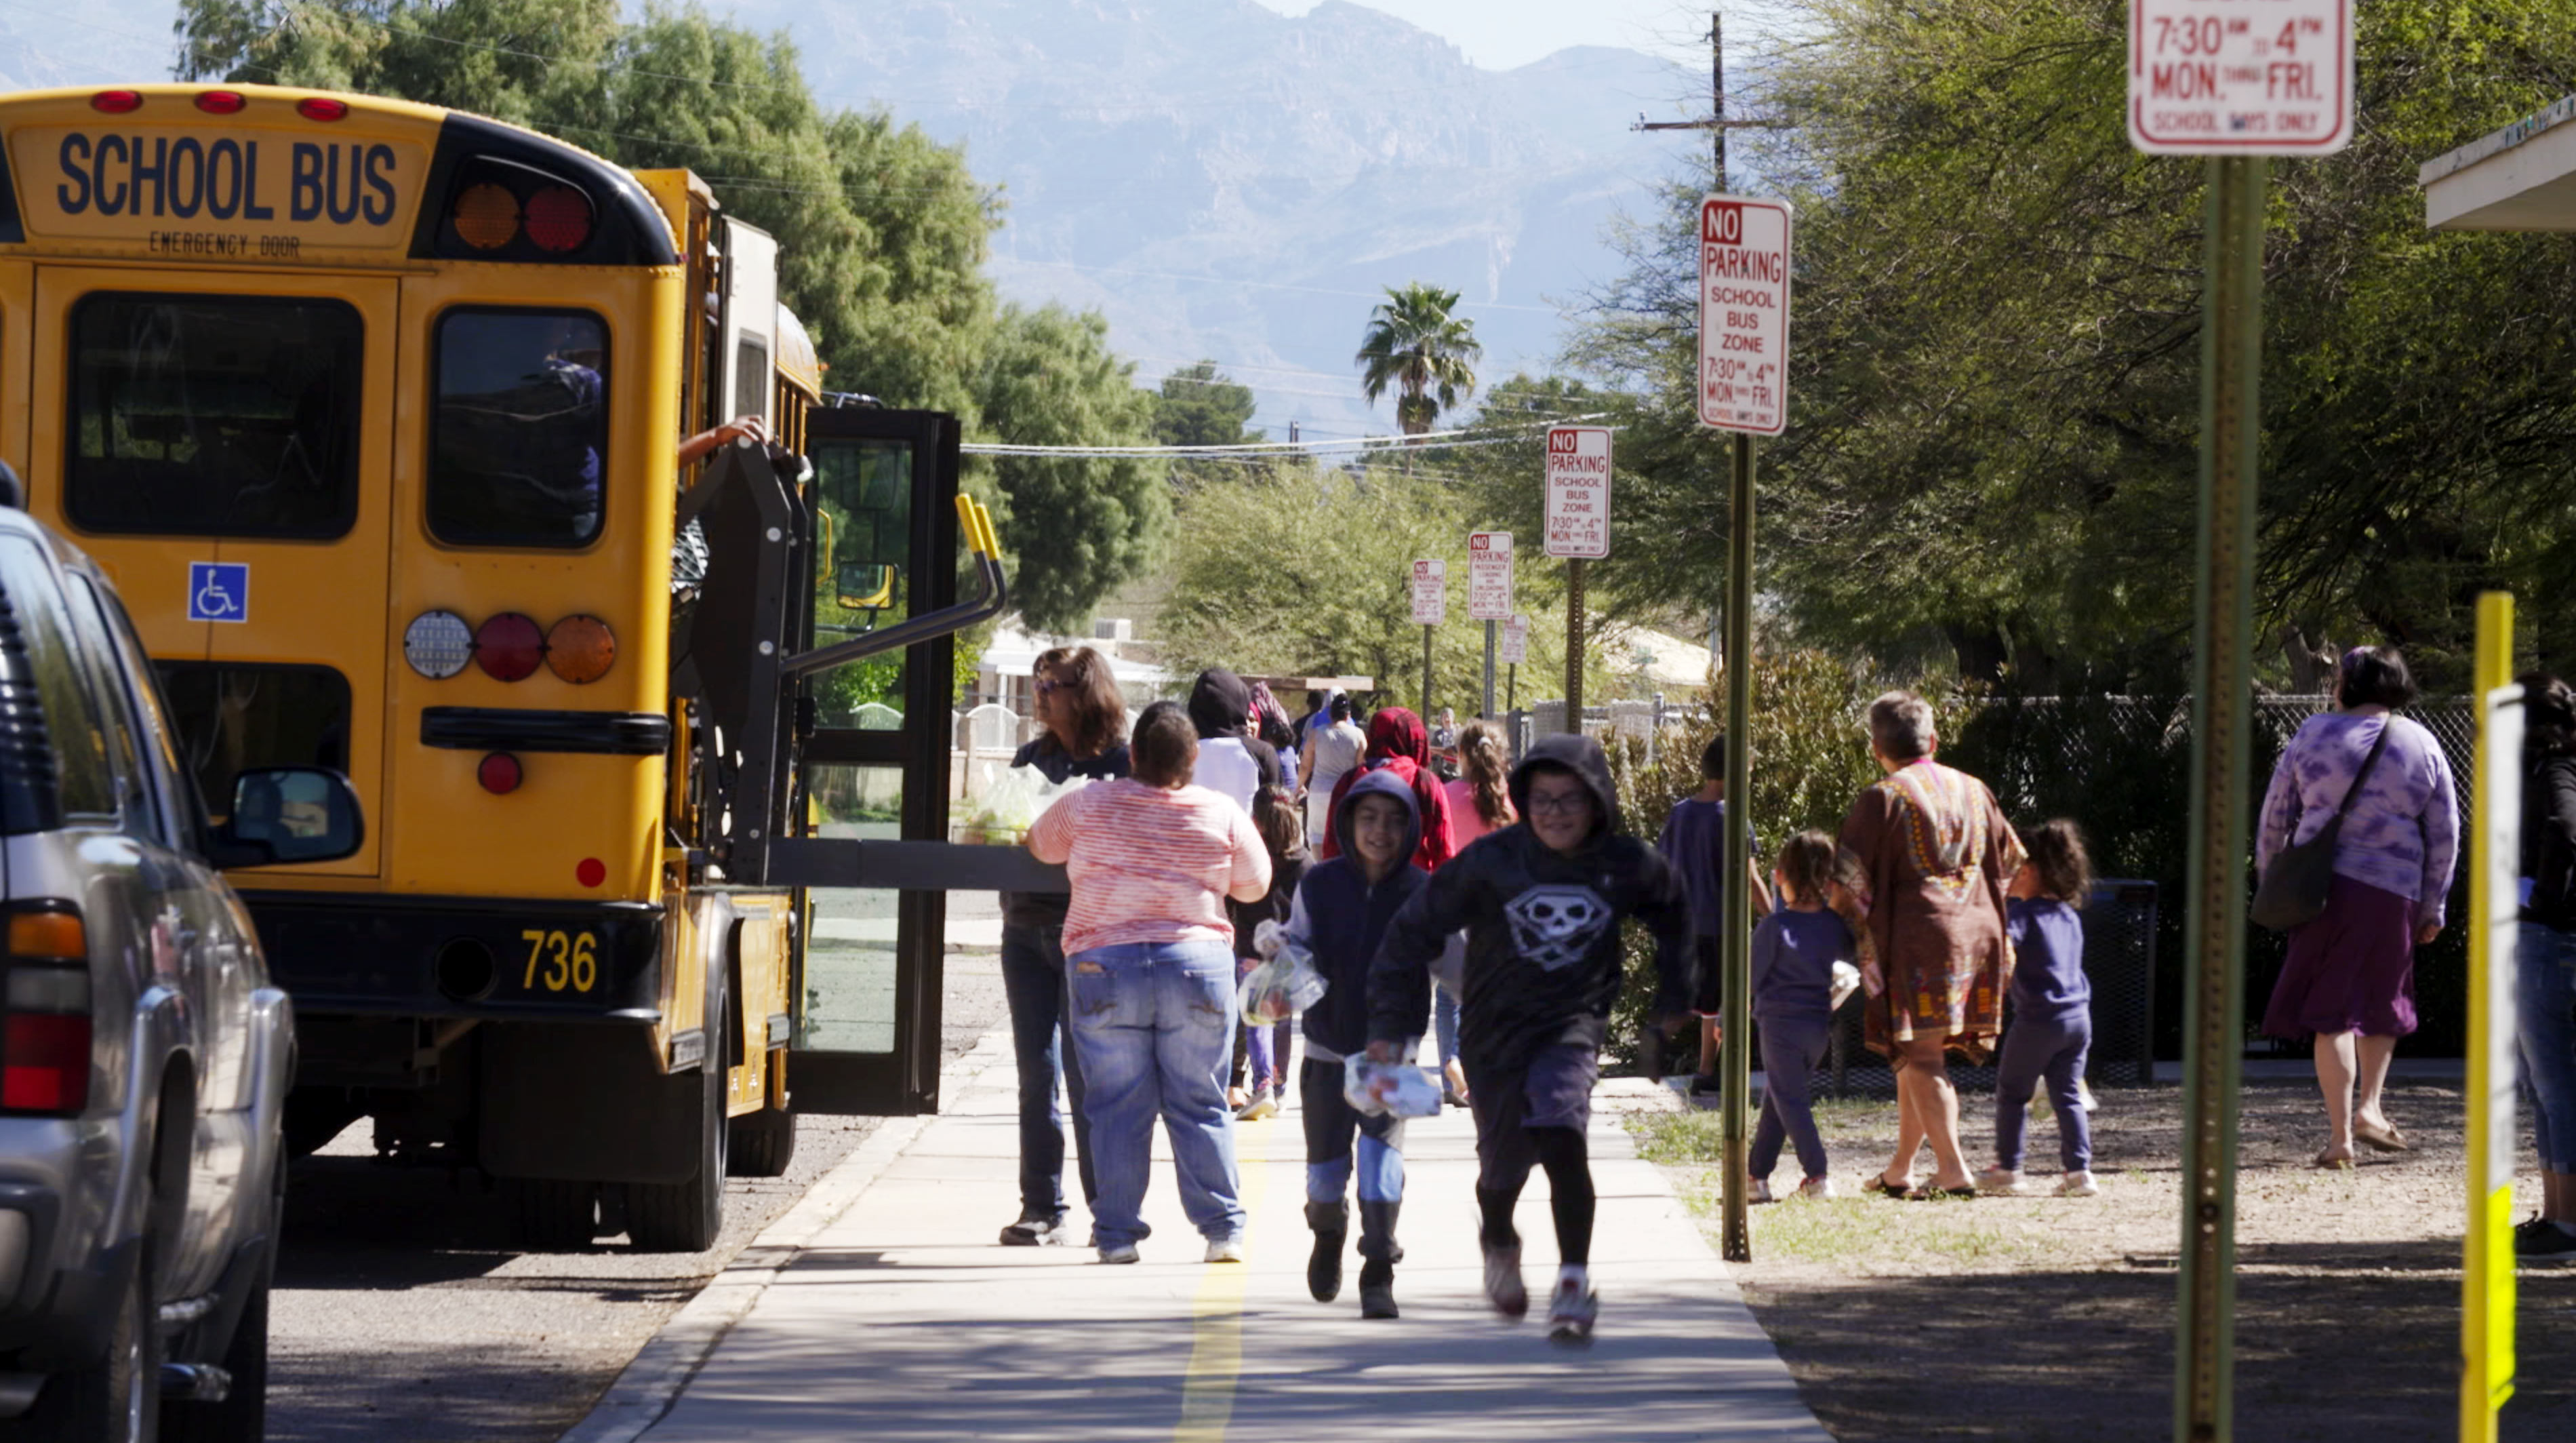 Students and families receive packaged meals from Tucson Unified School District workers who are distributing meals along the district's bus routes during closures associated with the COVID-19 pandemic.